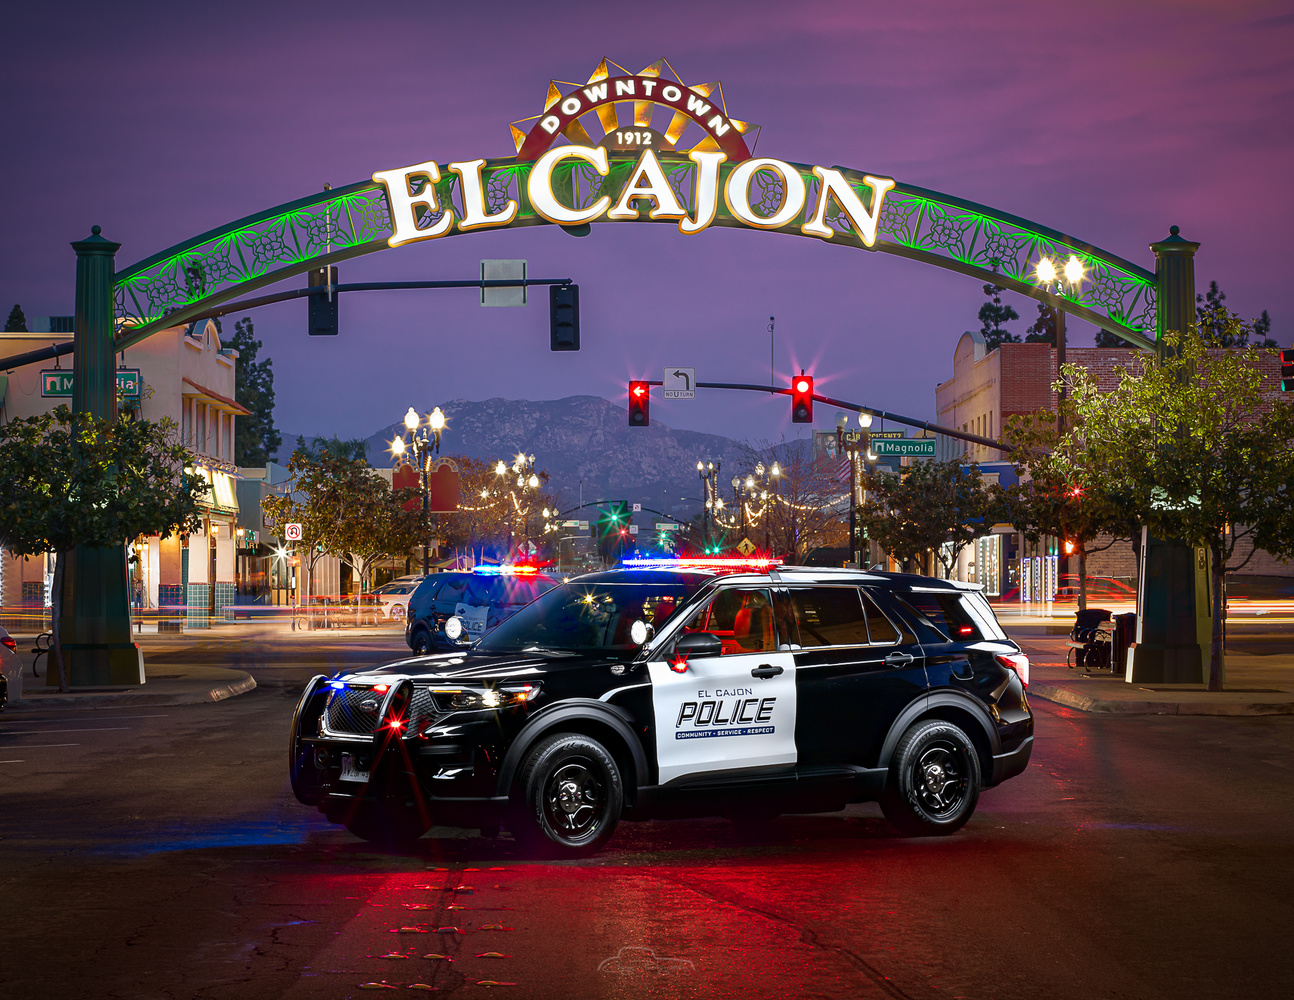 El Cajon Police with El Cajon sign by Creigh McIntyre